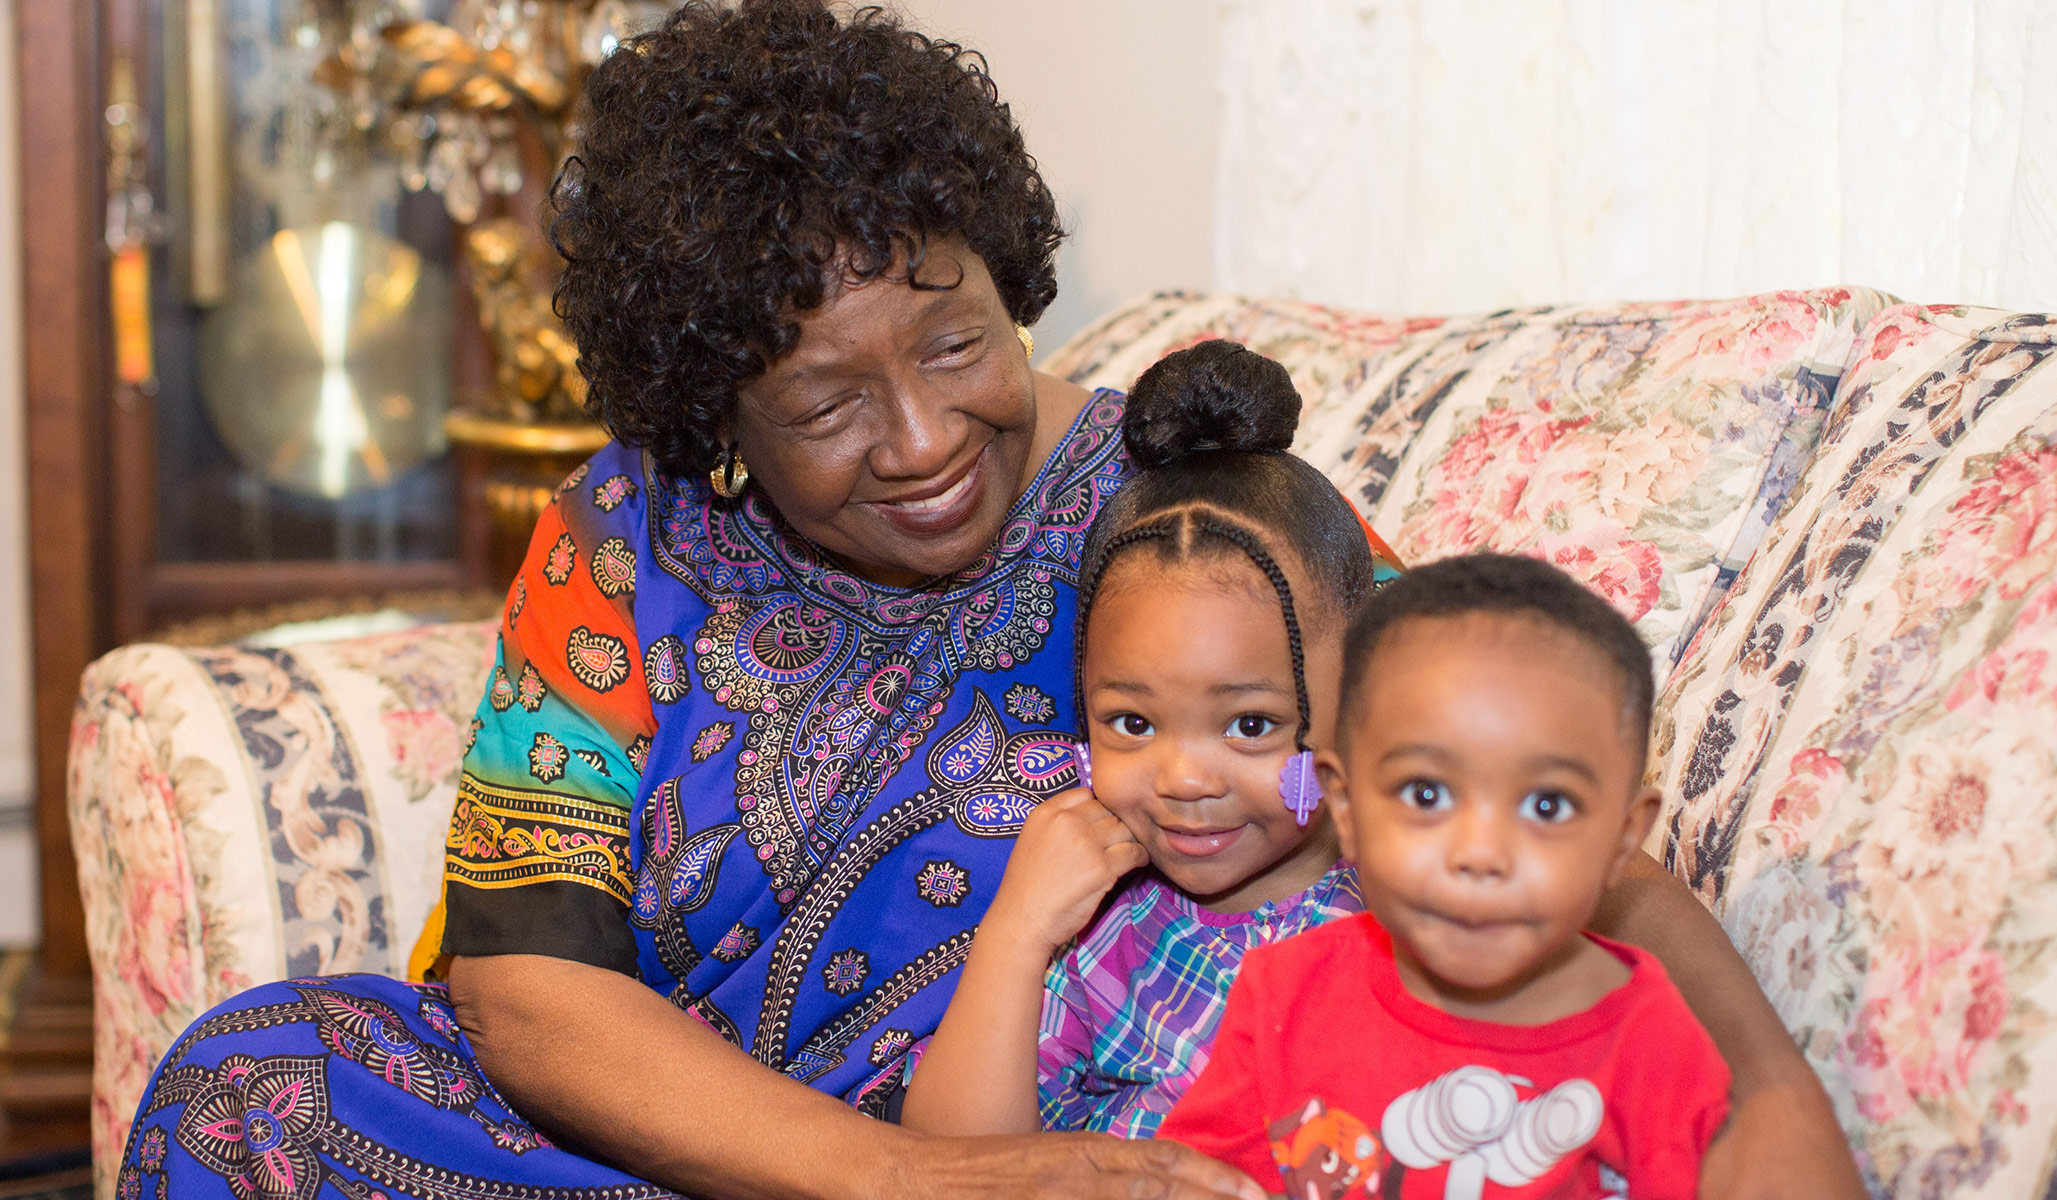 Foster Children in Philadelphia Get Relief from Cruelty, Abortion Doulas & More